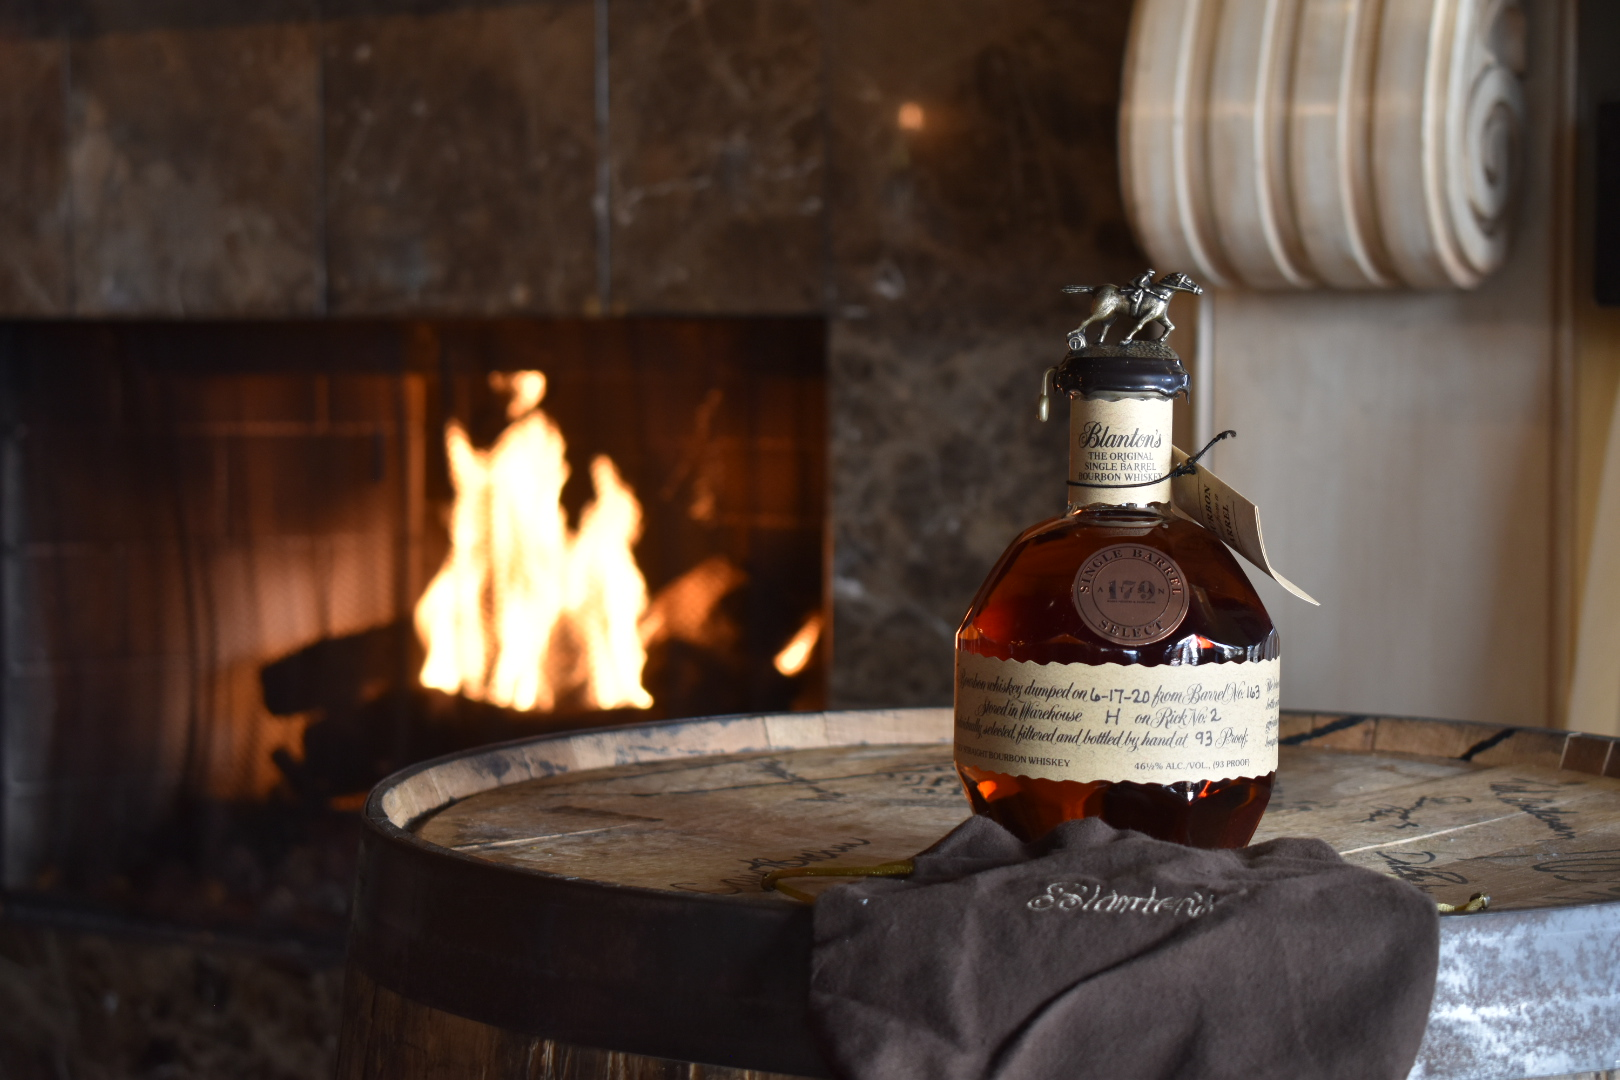 Bottle of Blanton's with Artisan 179 label on it sitting on barrel in front of fireplace